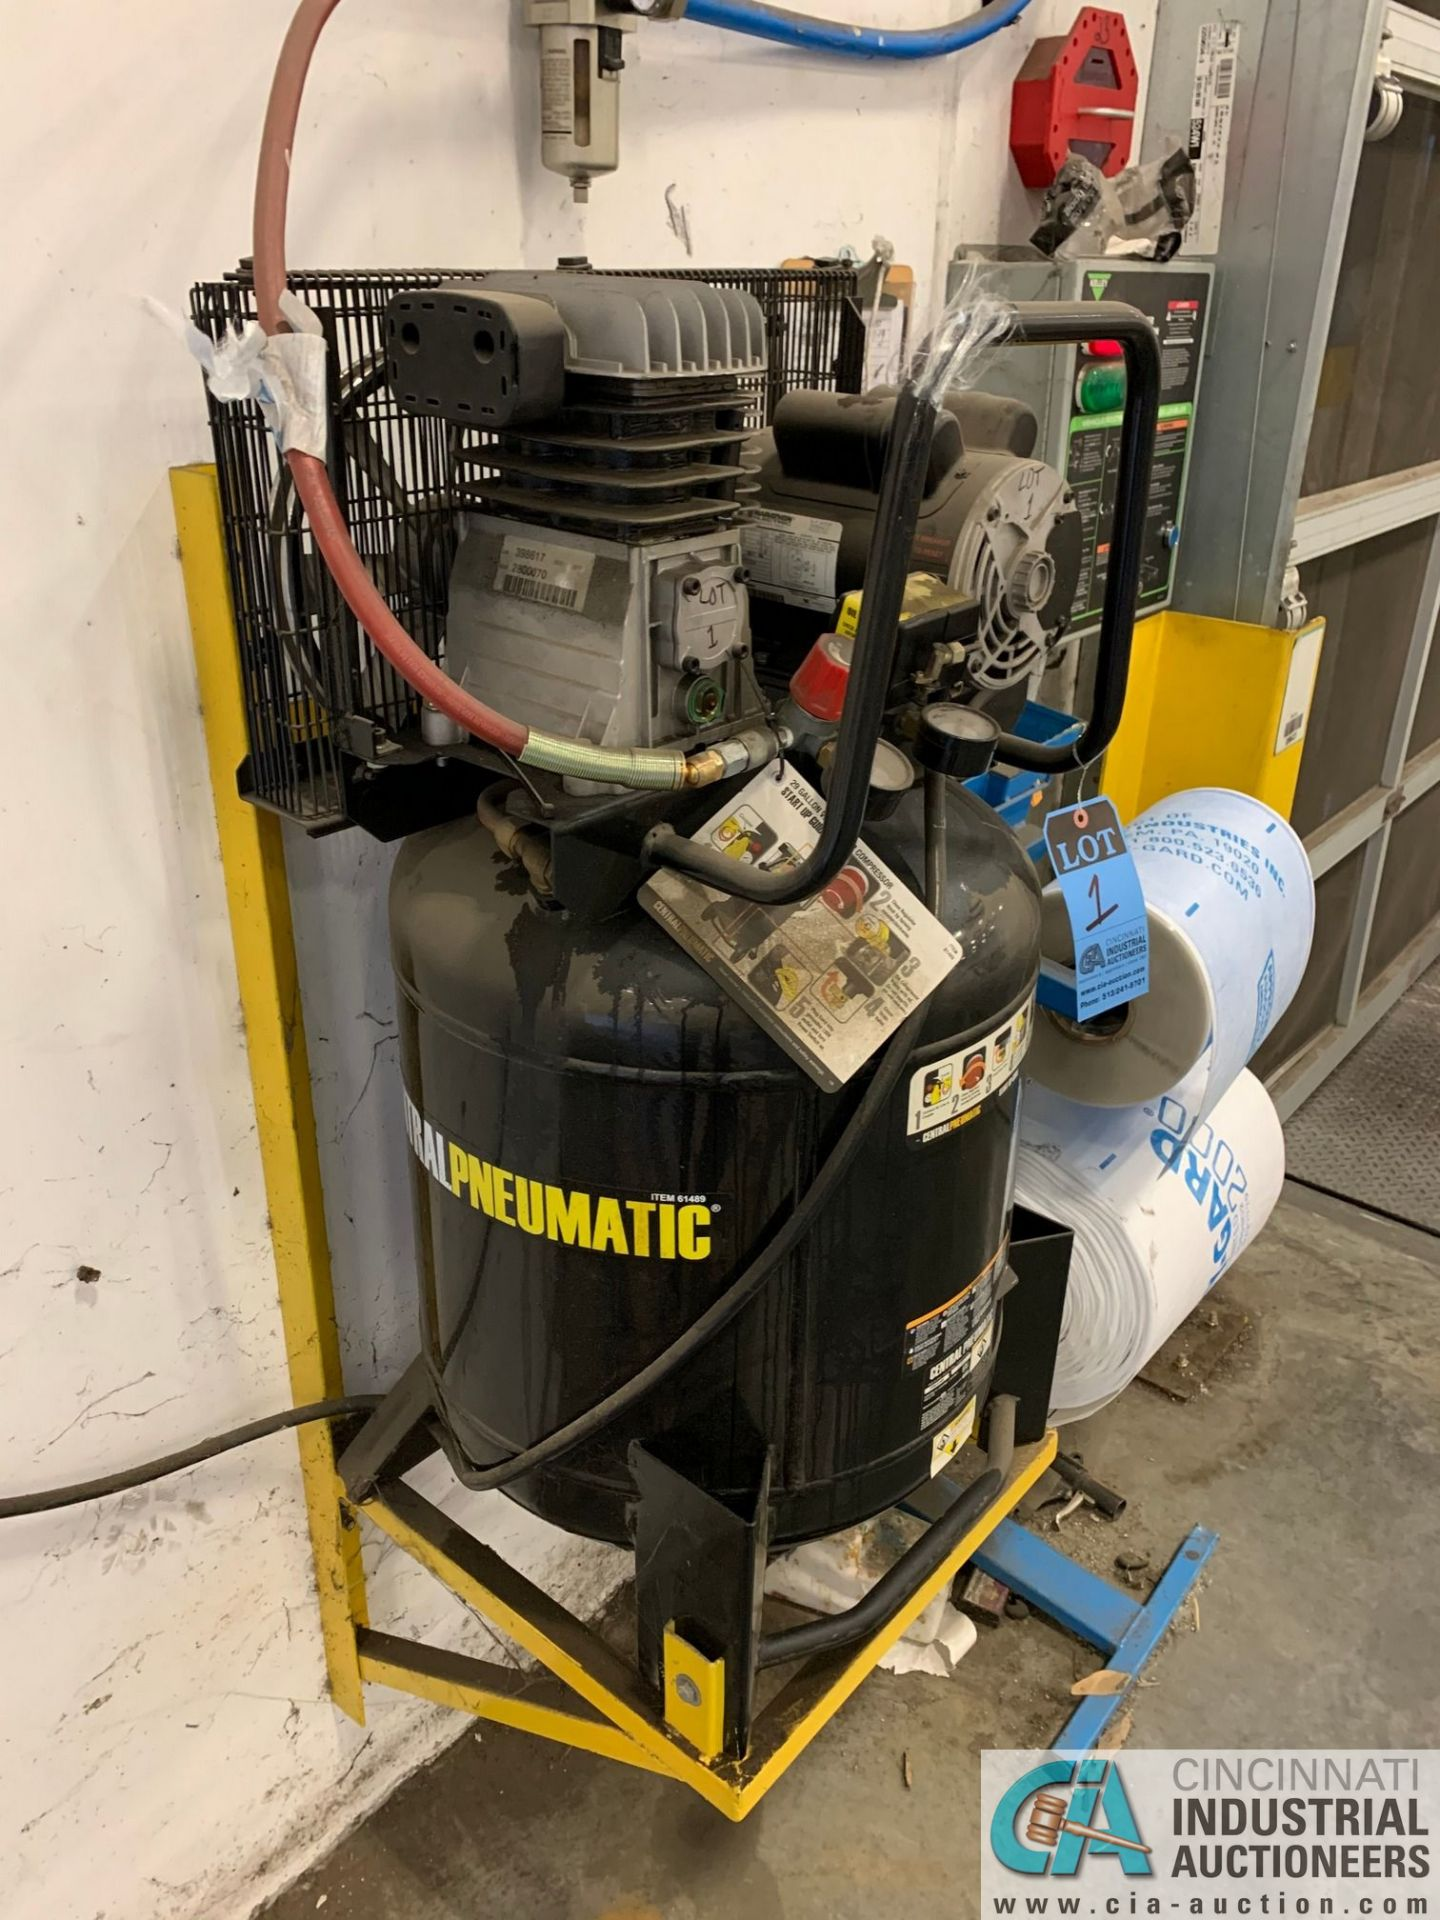 2-HP CENTRAL PNEUMATIC ITEM 61489 AIR COMPRESSOR; S/N 02957, 29-GALLON TANK, 150 MAX PSI (2015) ( - Image 3 of 7